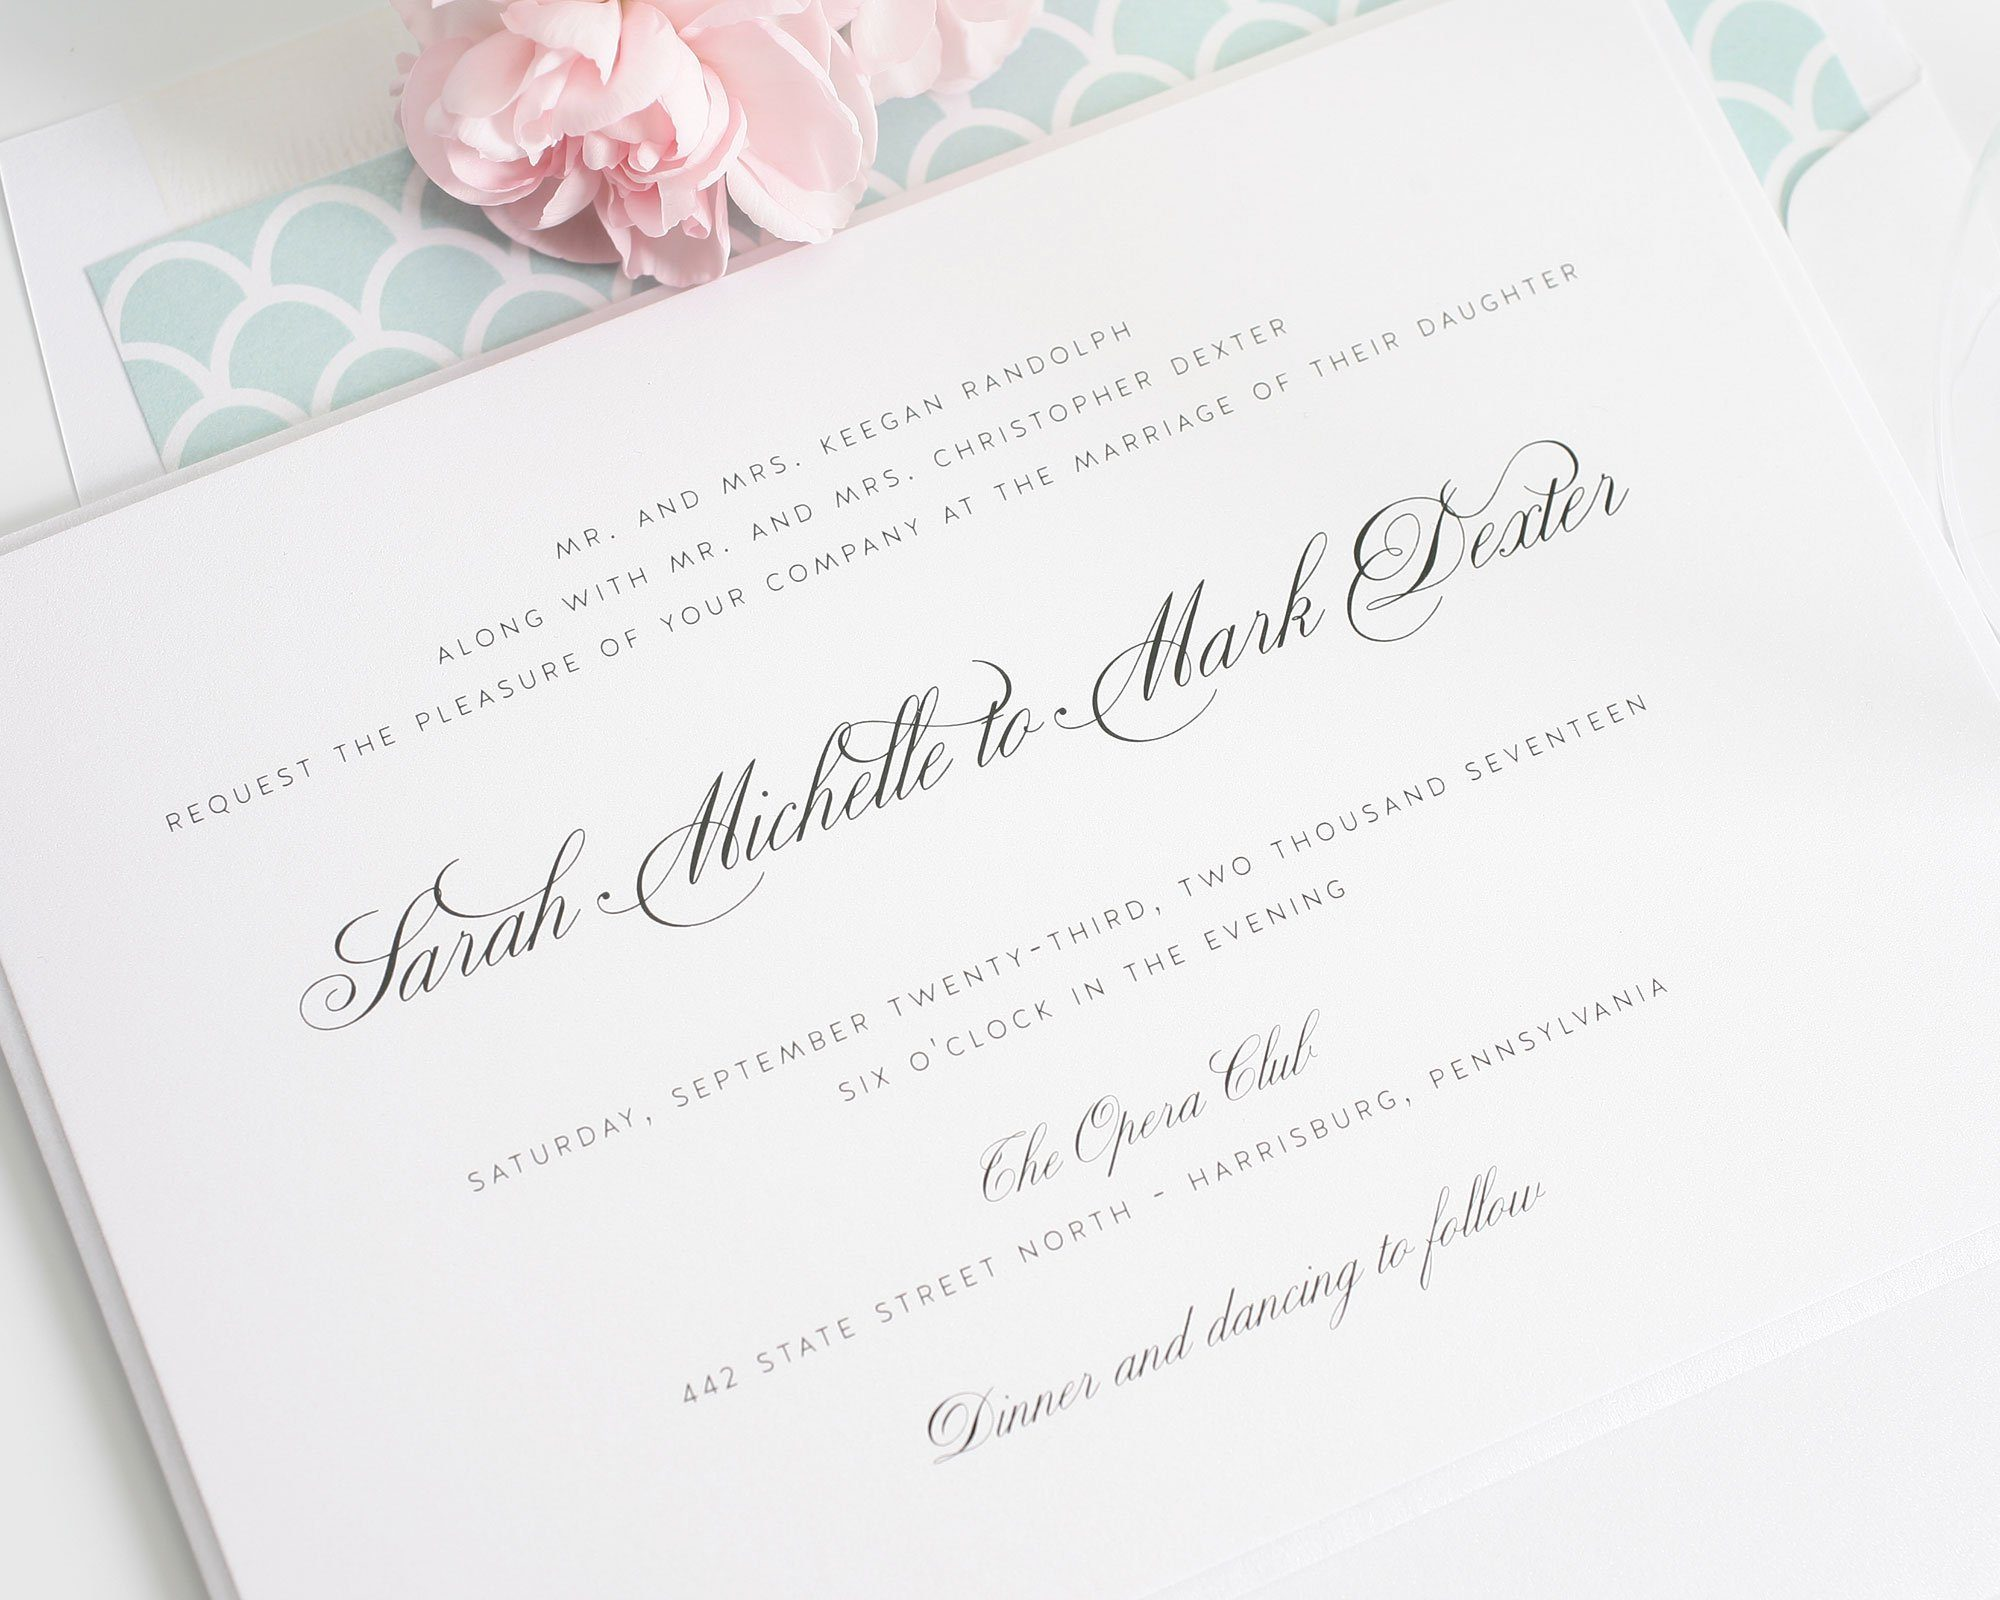 Elgant wedding invitations in mint shells